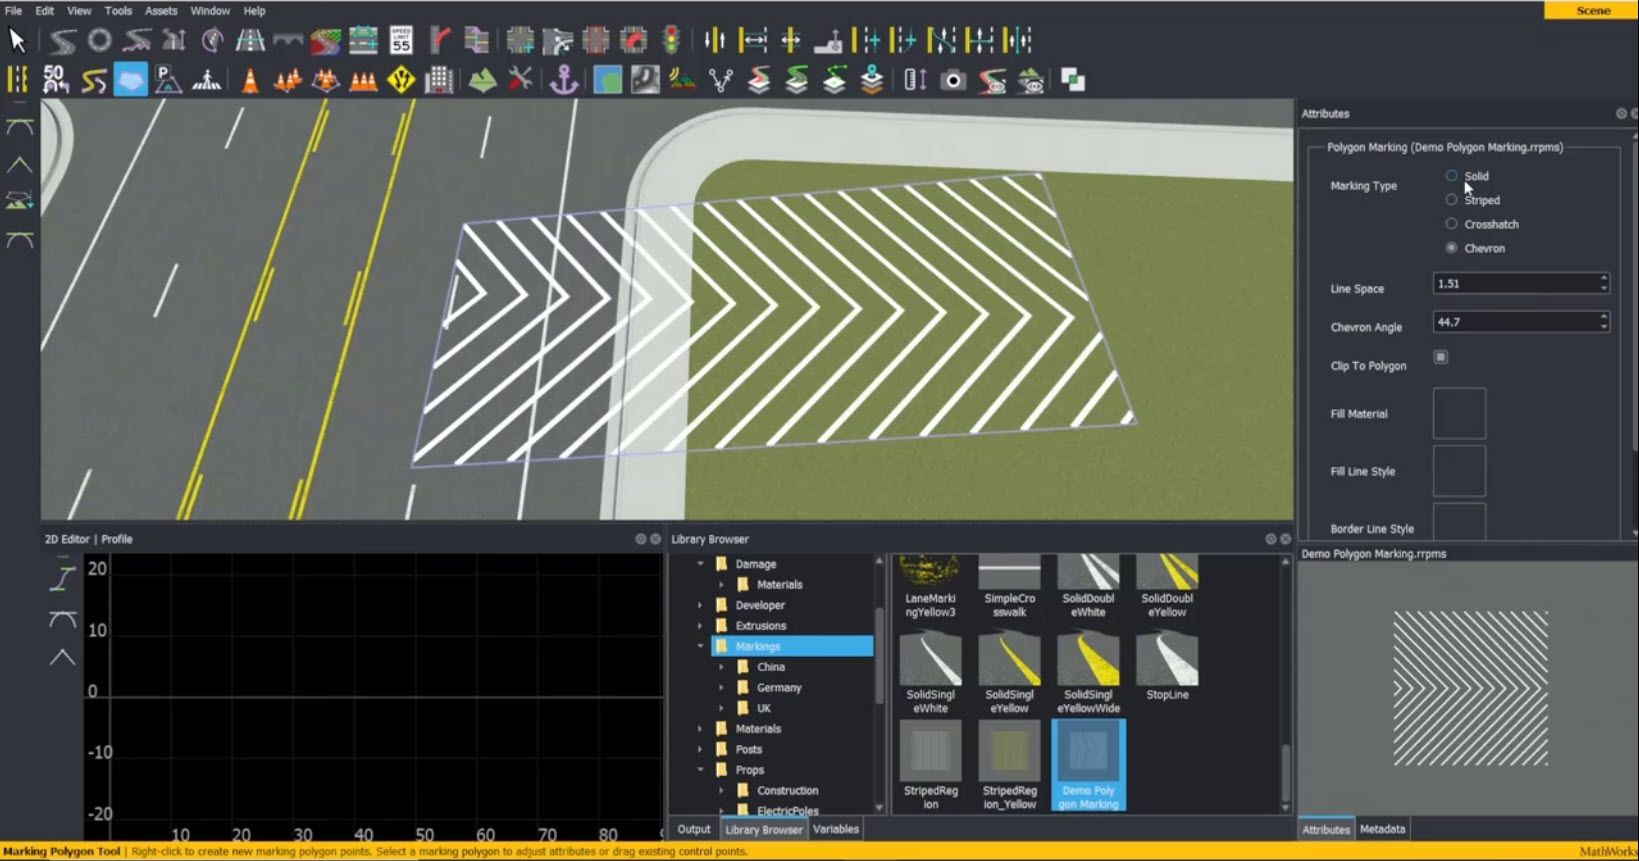 Learn how to create and edit marking polygons in RoadRunner interactive editing software.